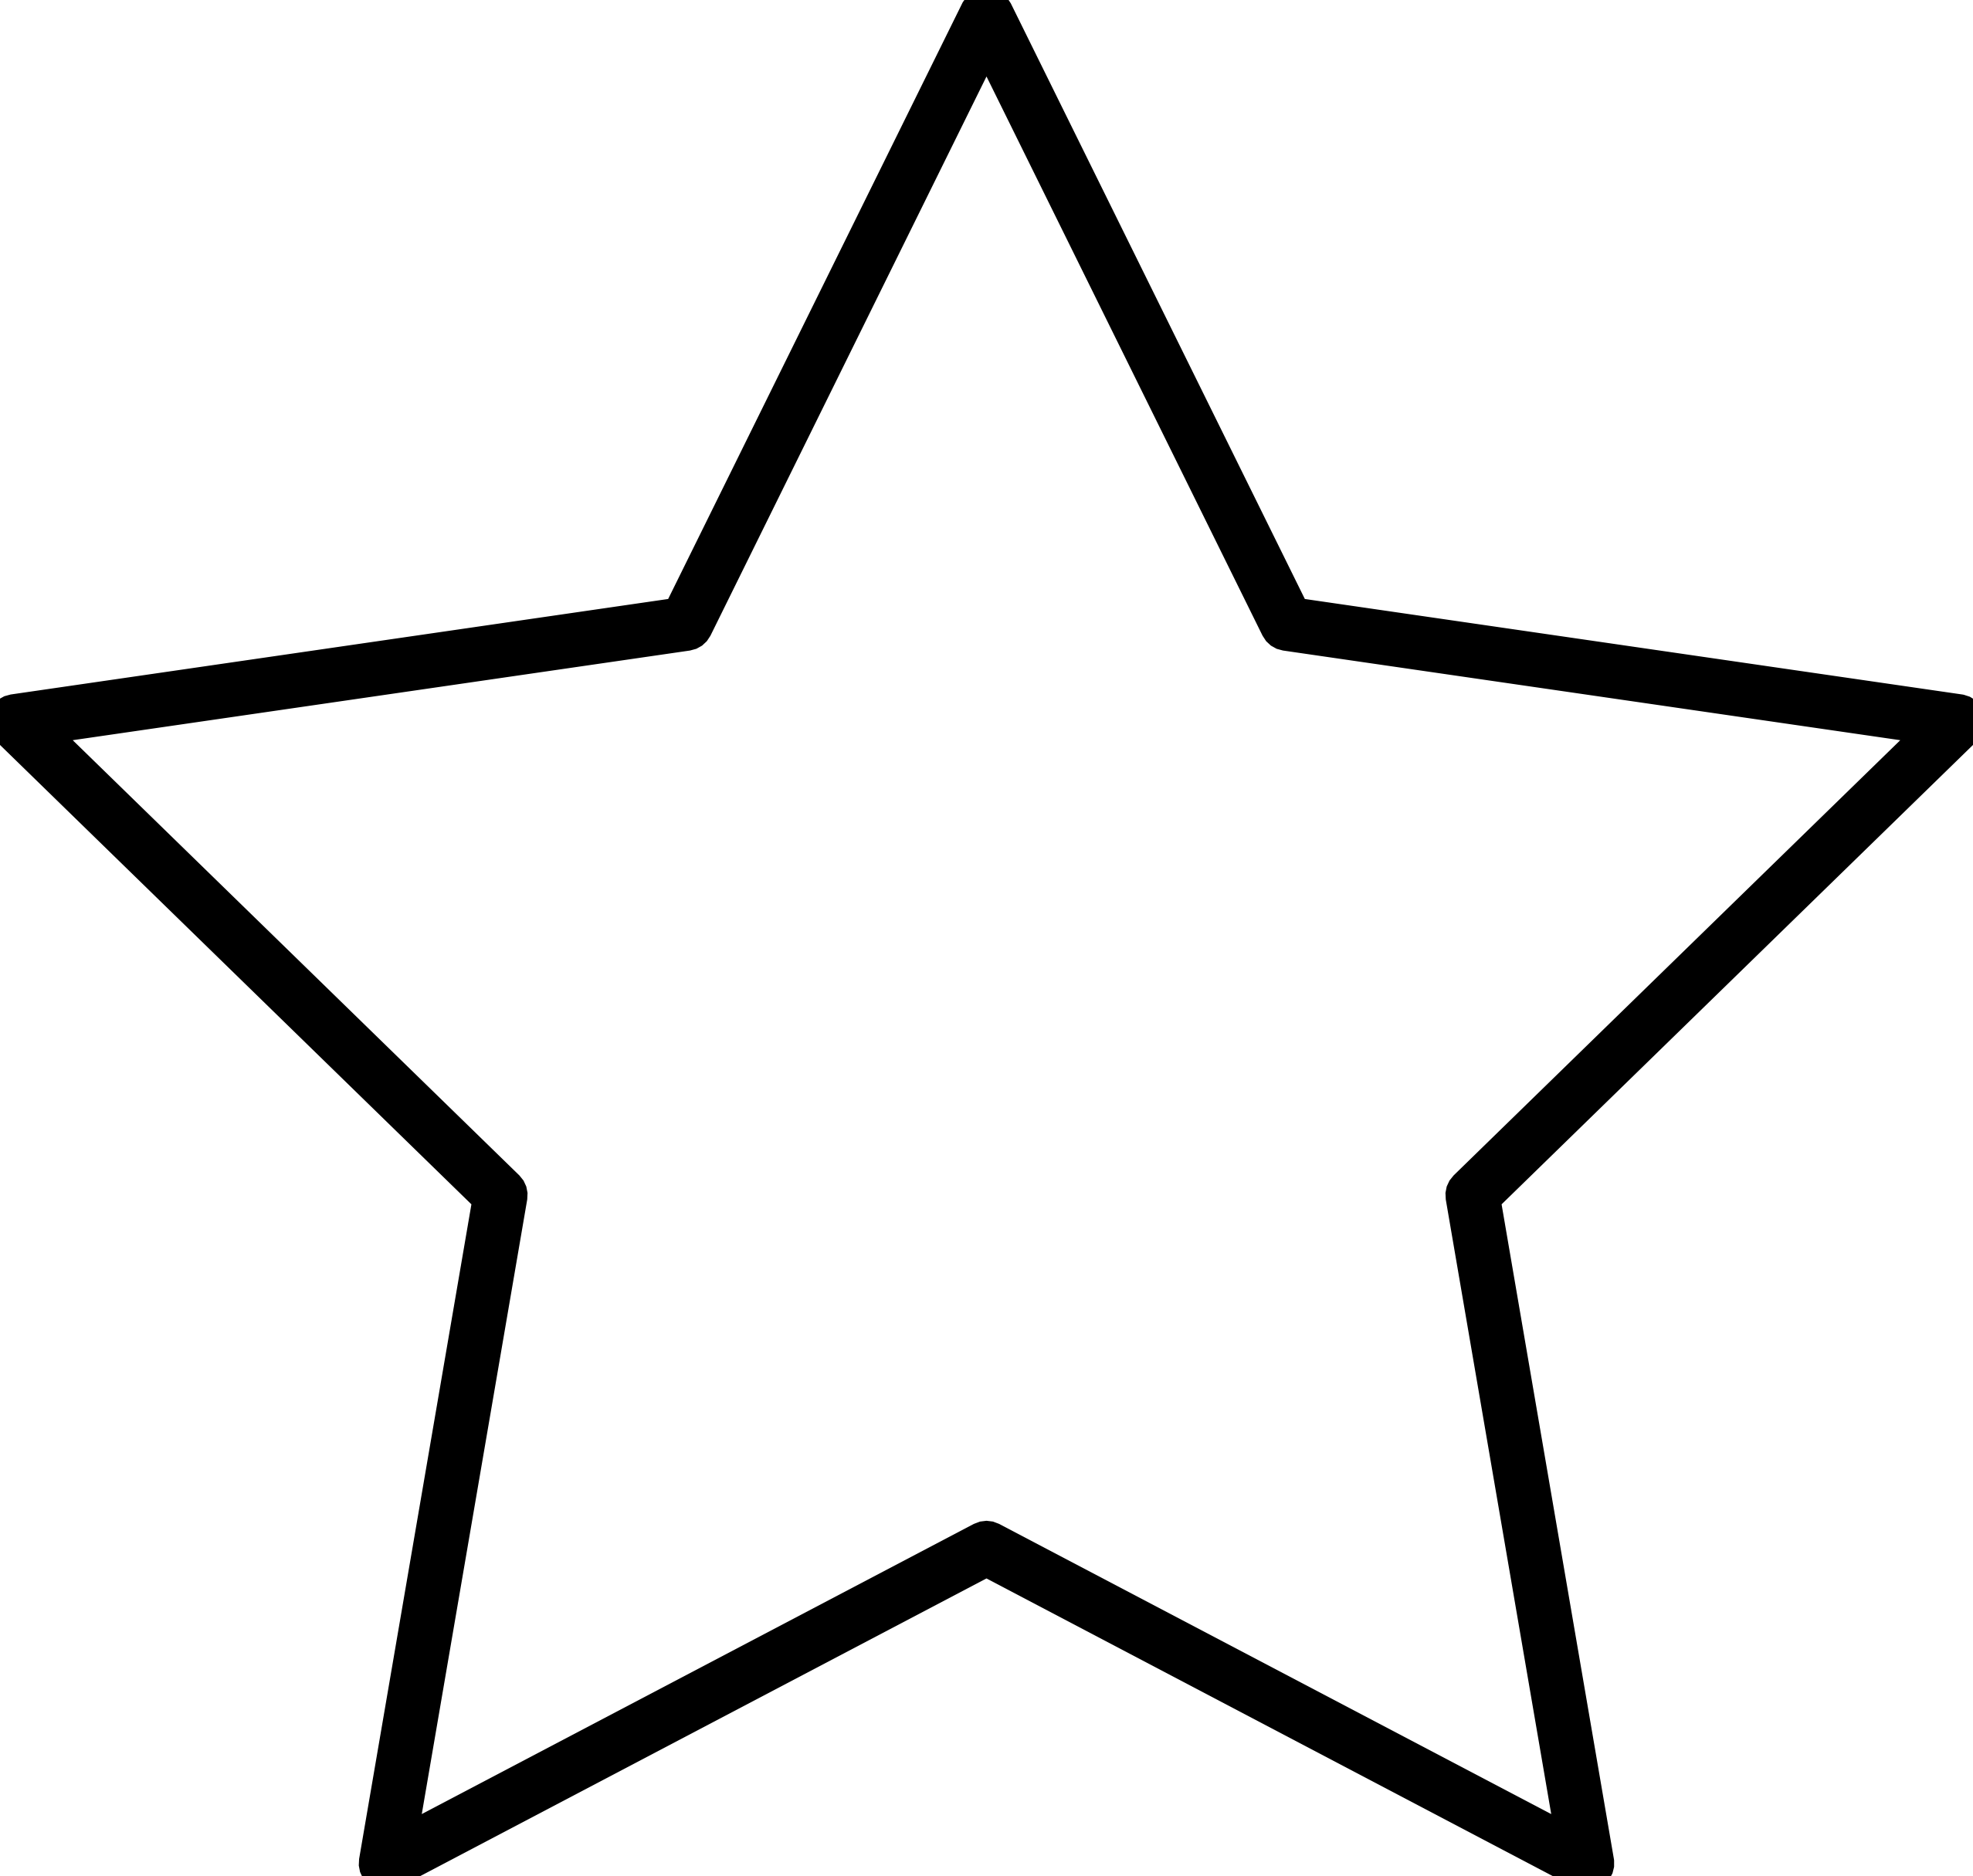 5 point star clipart free image transparent Star Of David Silhouette at GetDrawings.com | Free for personal use ... image transparent